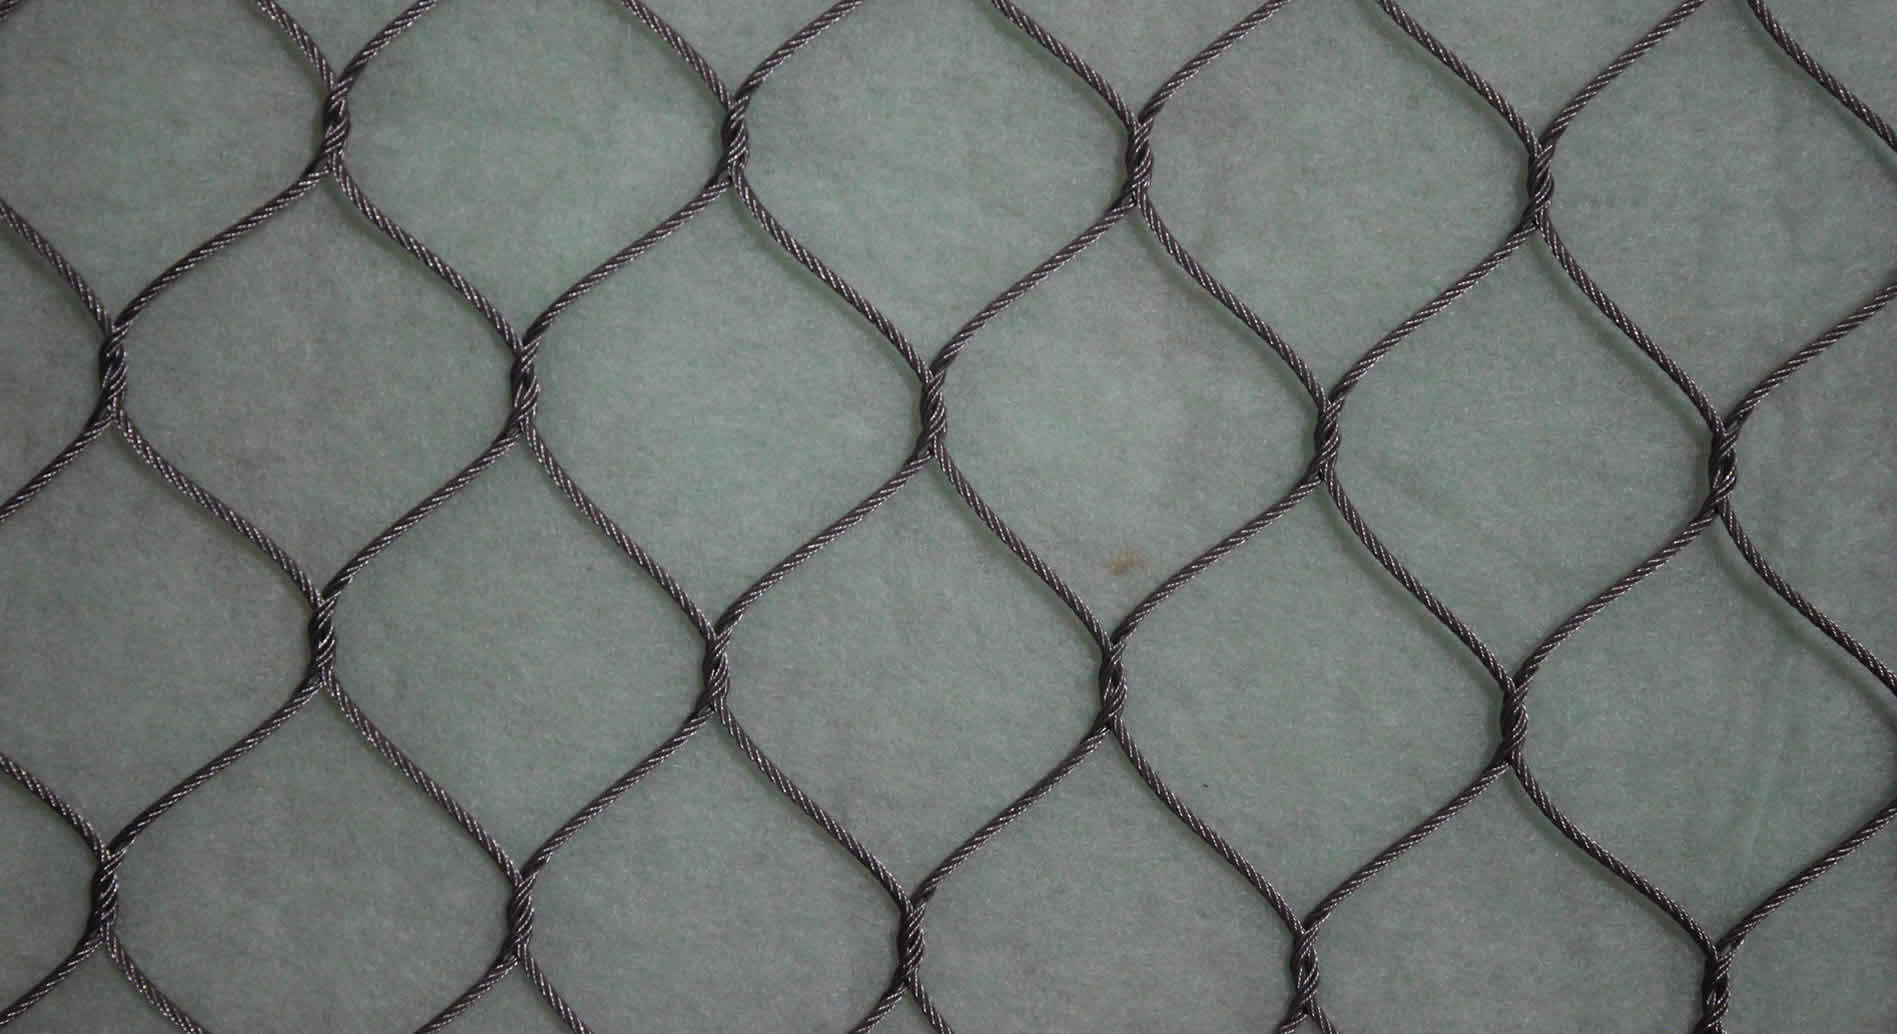 stainless steel rope mesh